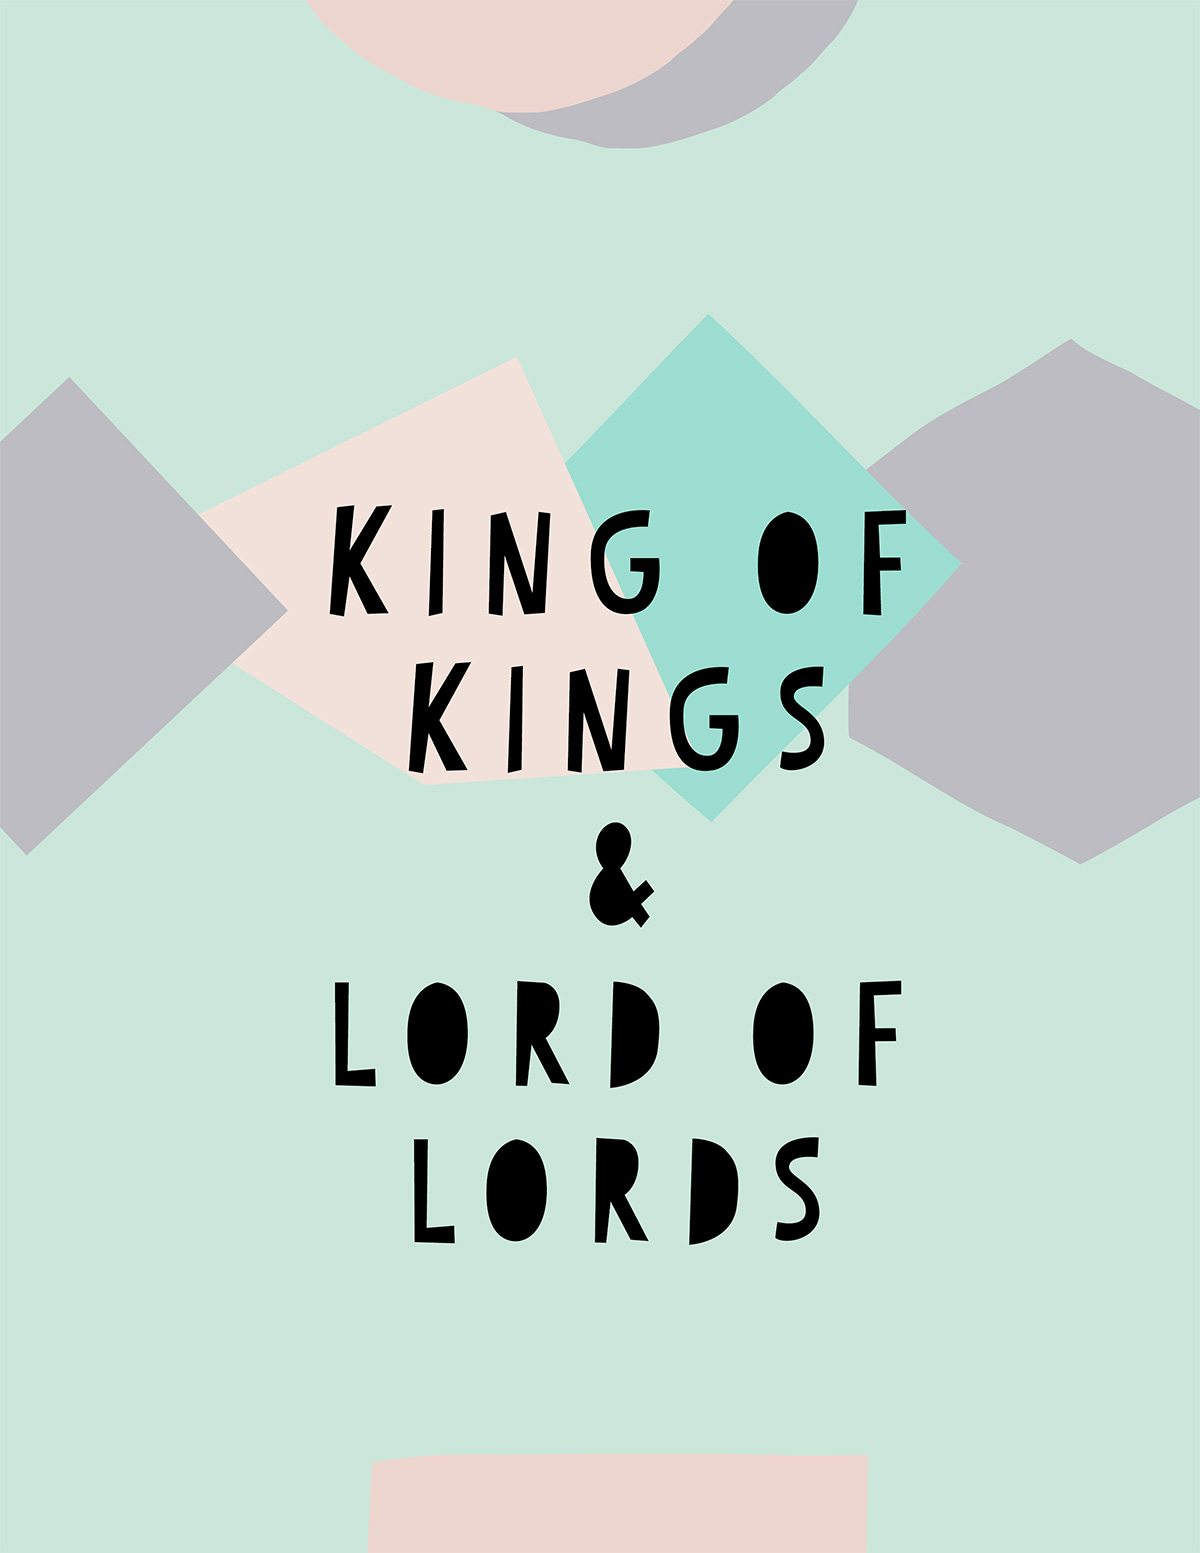 king of kings artwork for Christmas kraft&mint blog